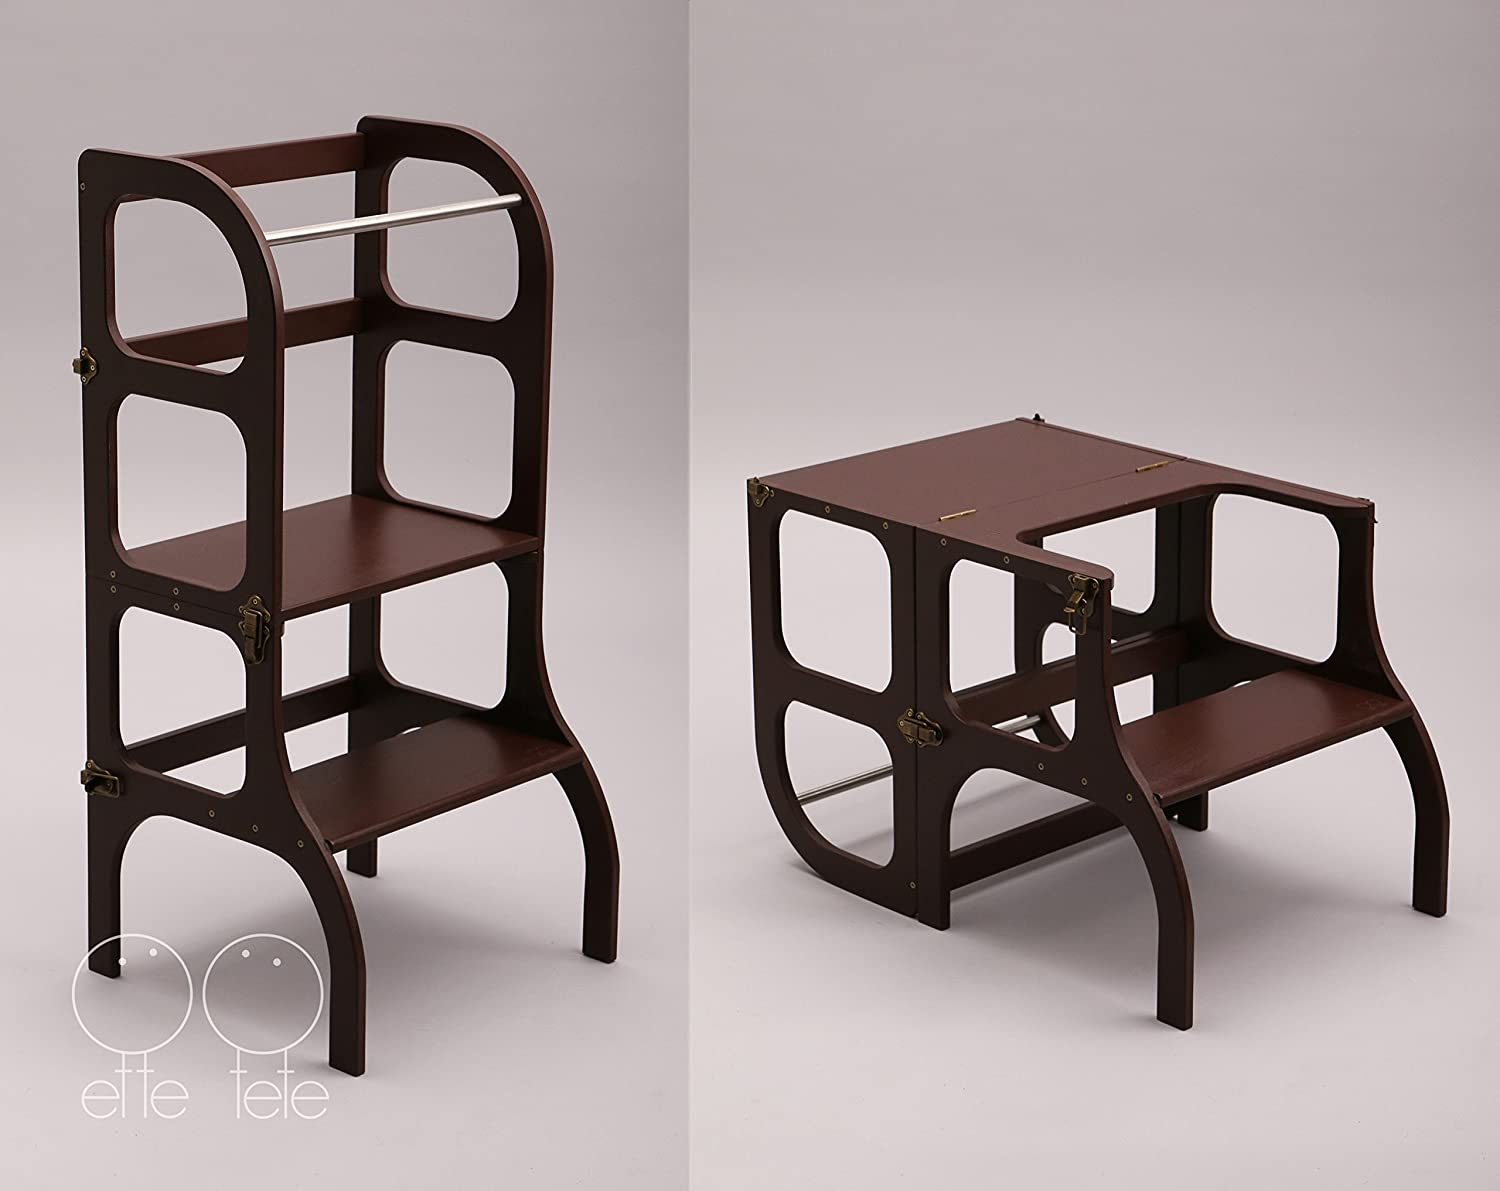 Montessori furniture Learning tower/table / chair, toddler Kitchen helper Step stool - dark BROWN color/antique BRASS clasps